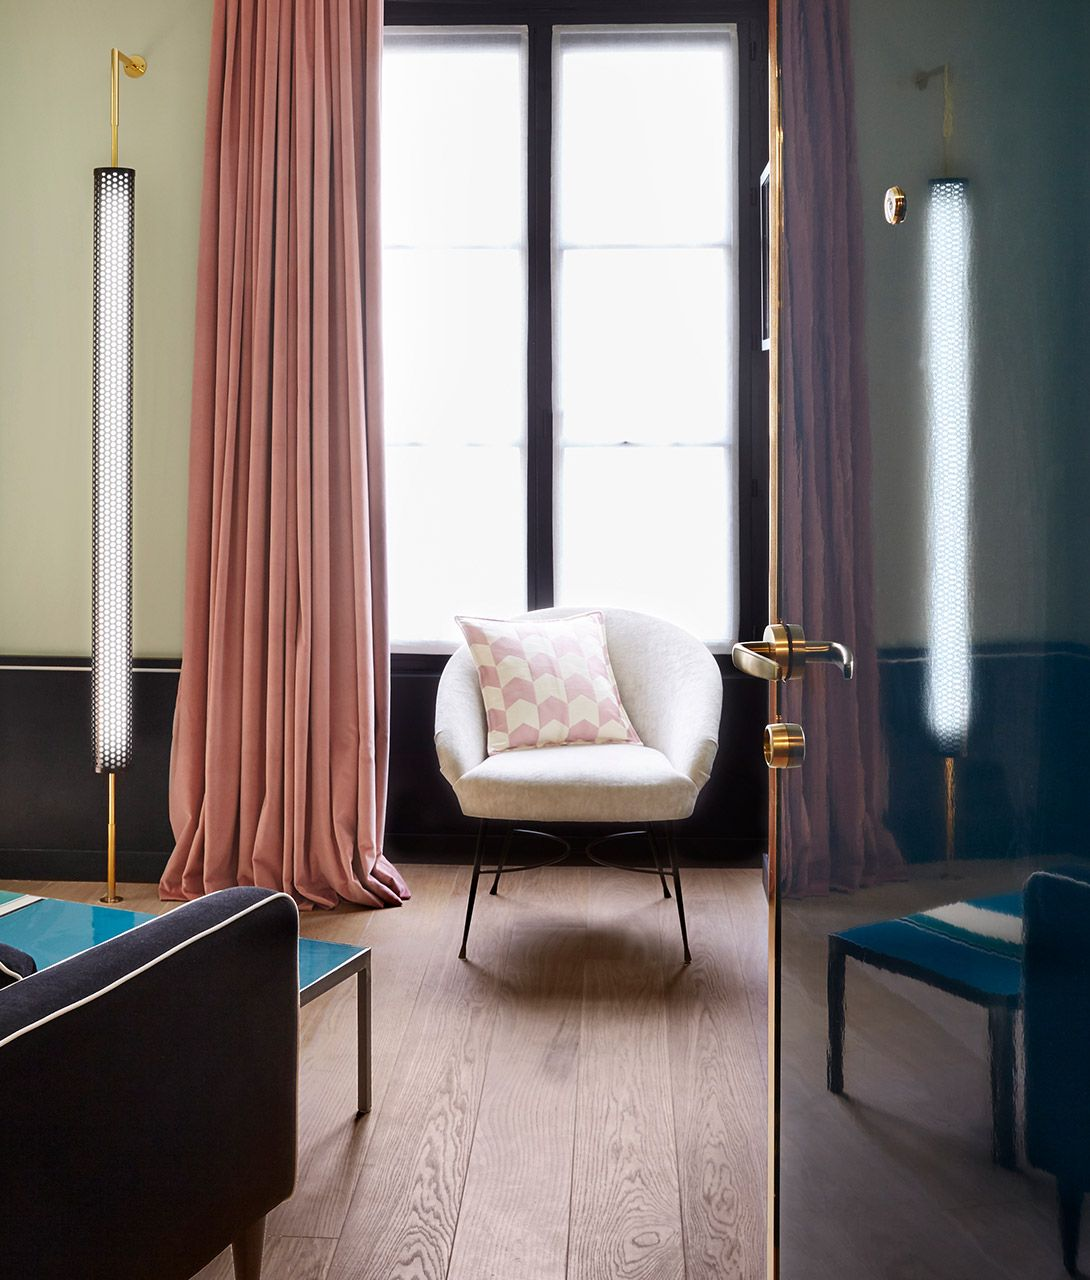 Le Roch Hotel Curtains in Paris